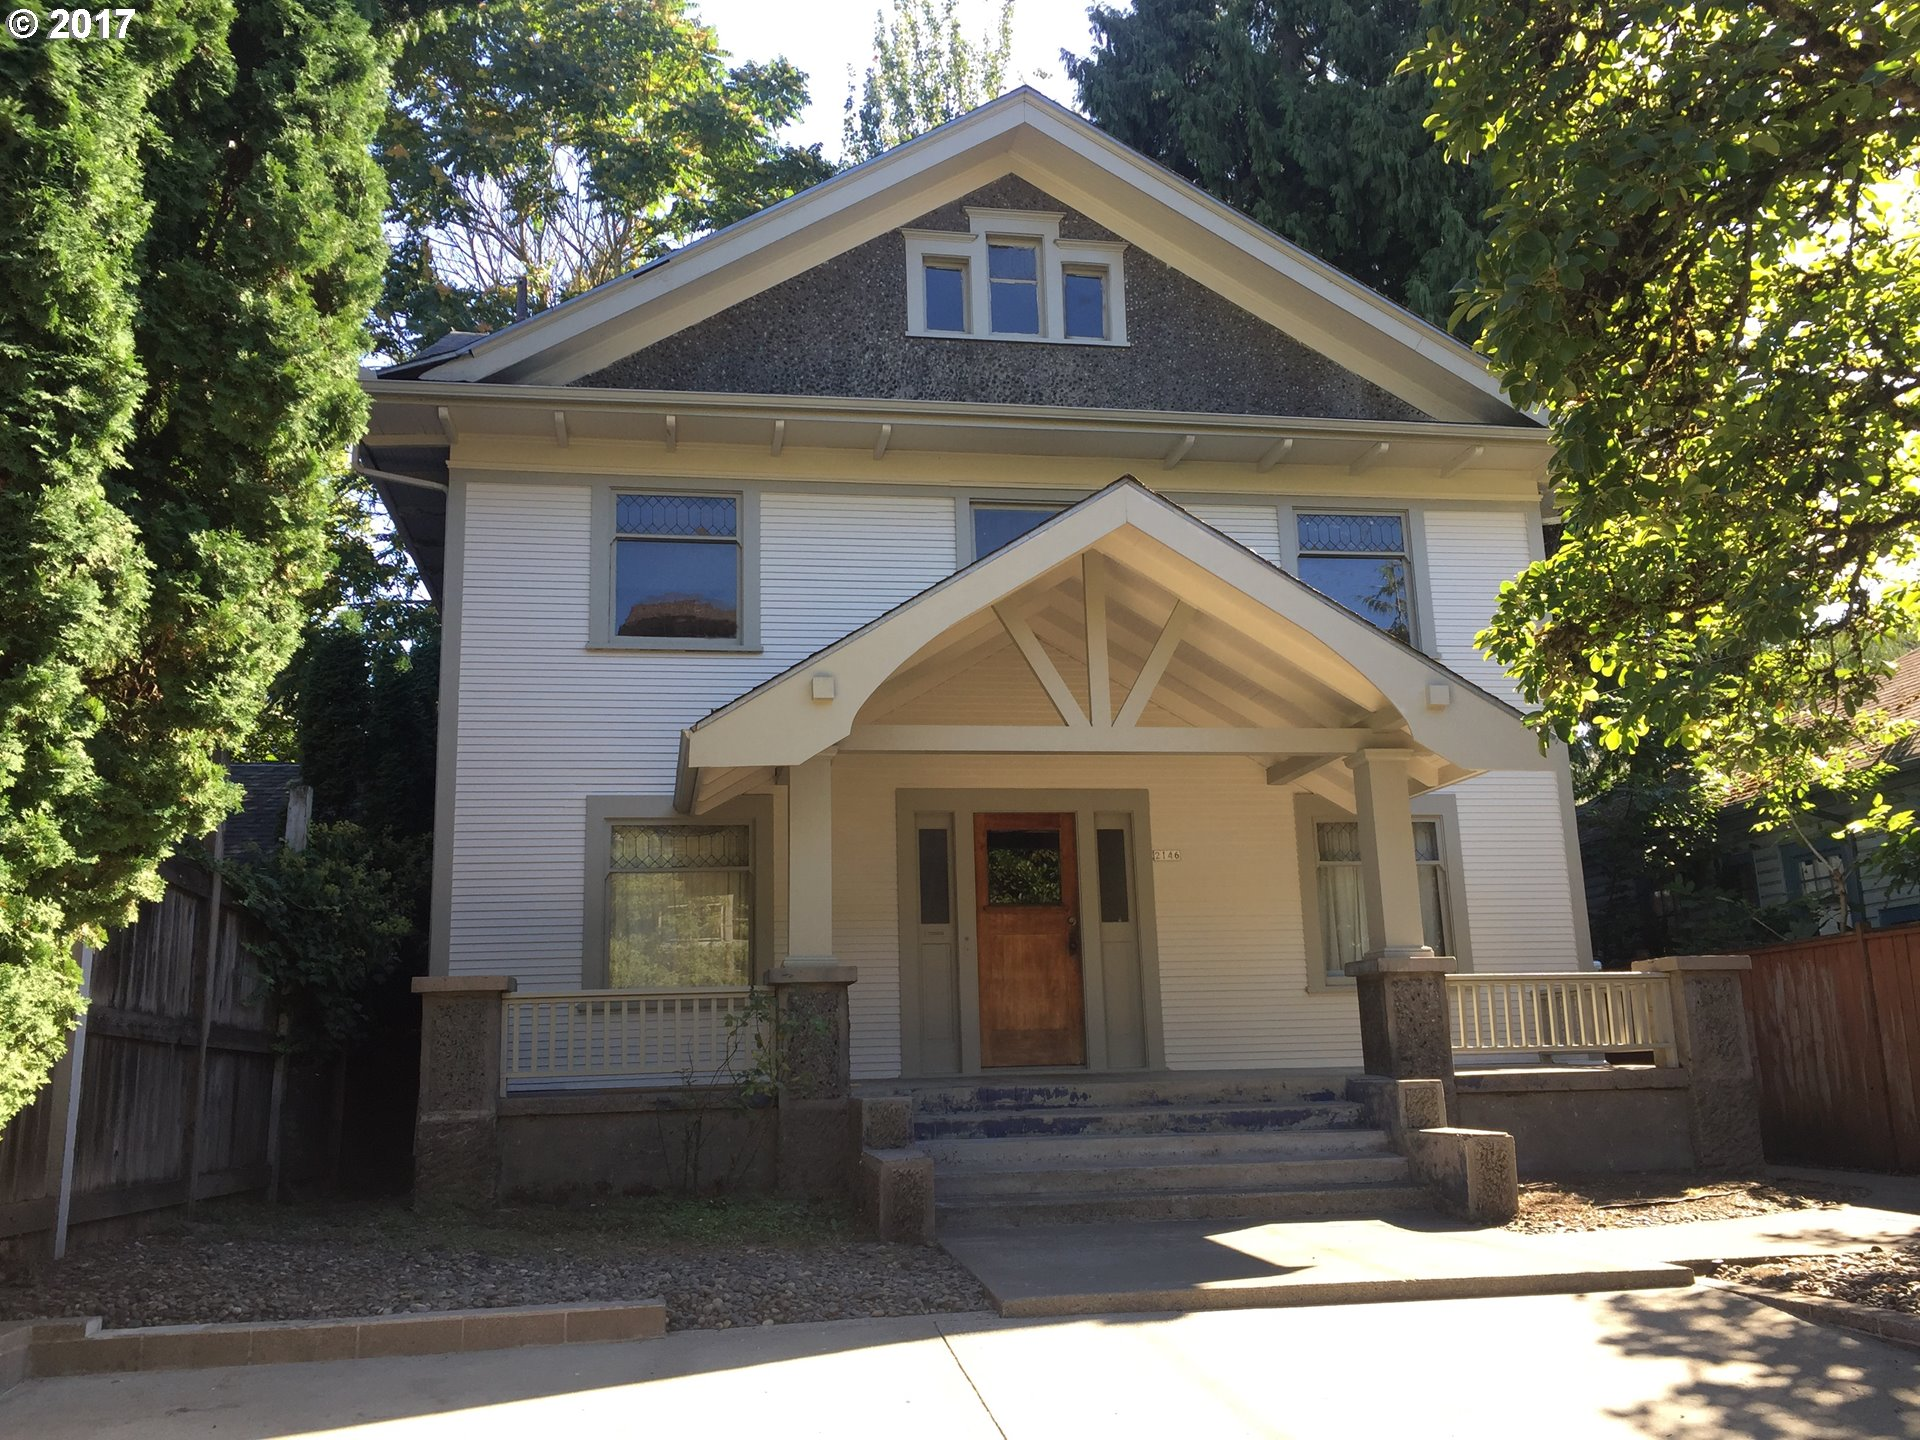 3646 sq. ft 5 bedrooms 3 bathrooms  House ,Portland, OR